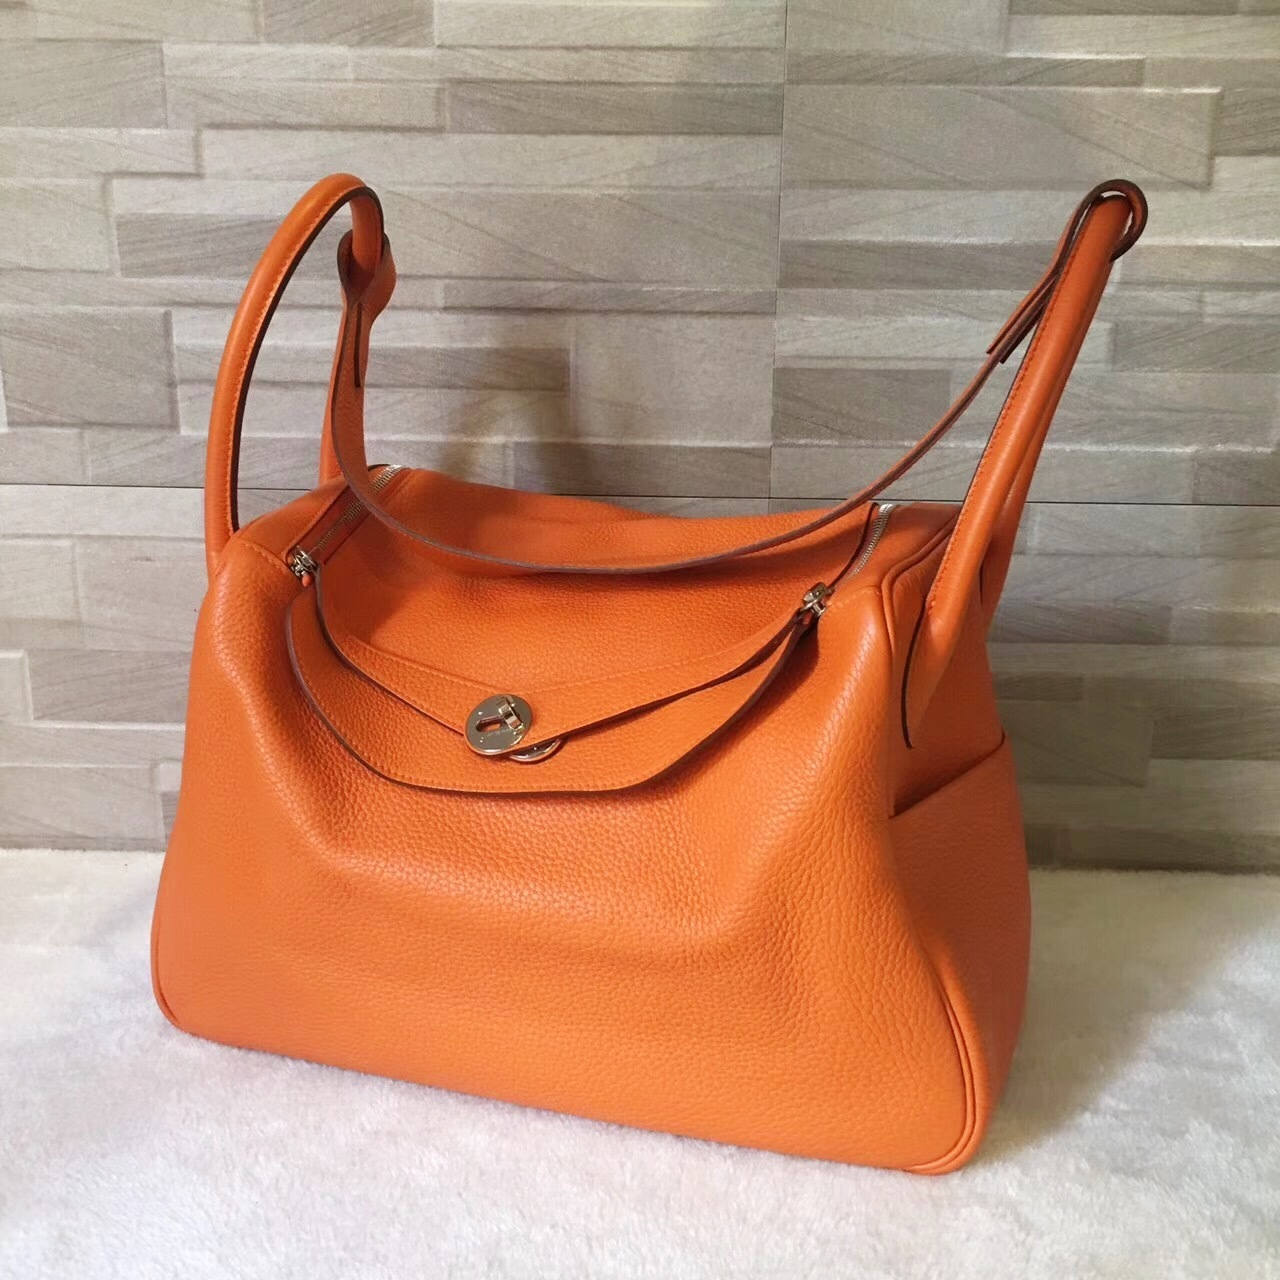 100% Authentic HERMES Taurillon Clemence Lindy 34 ORANGE Shoulder Bag PHW